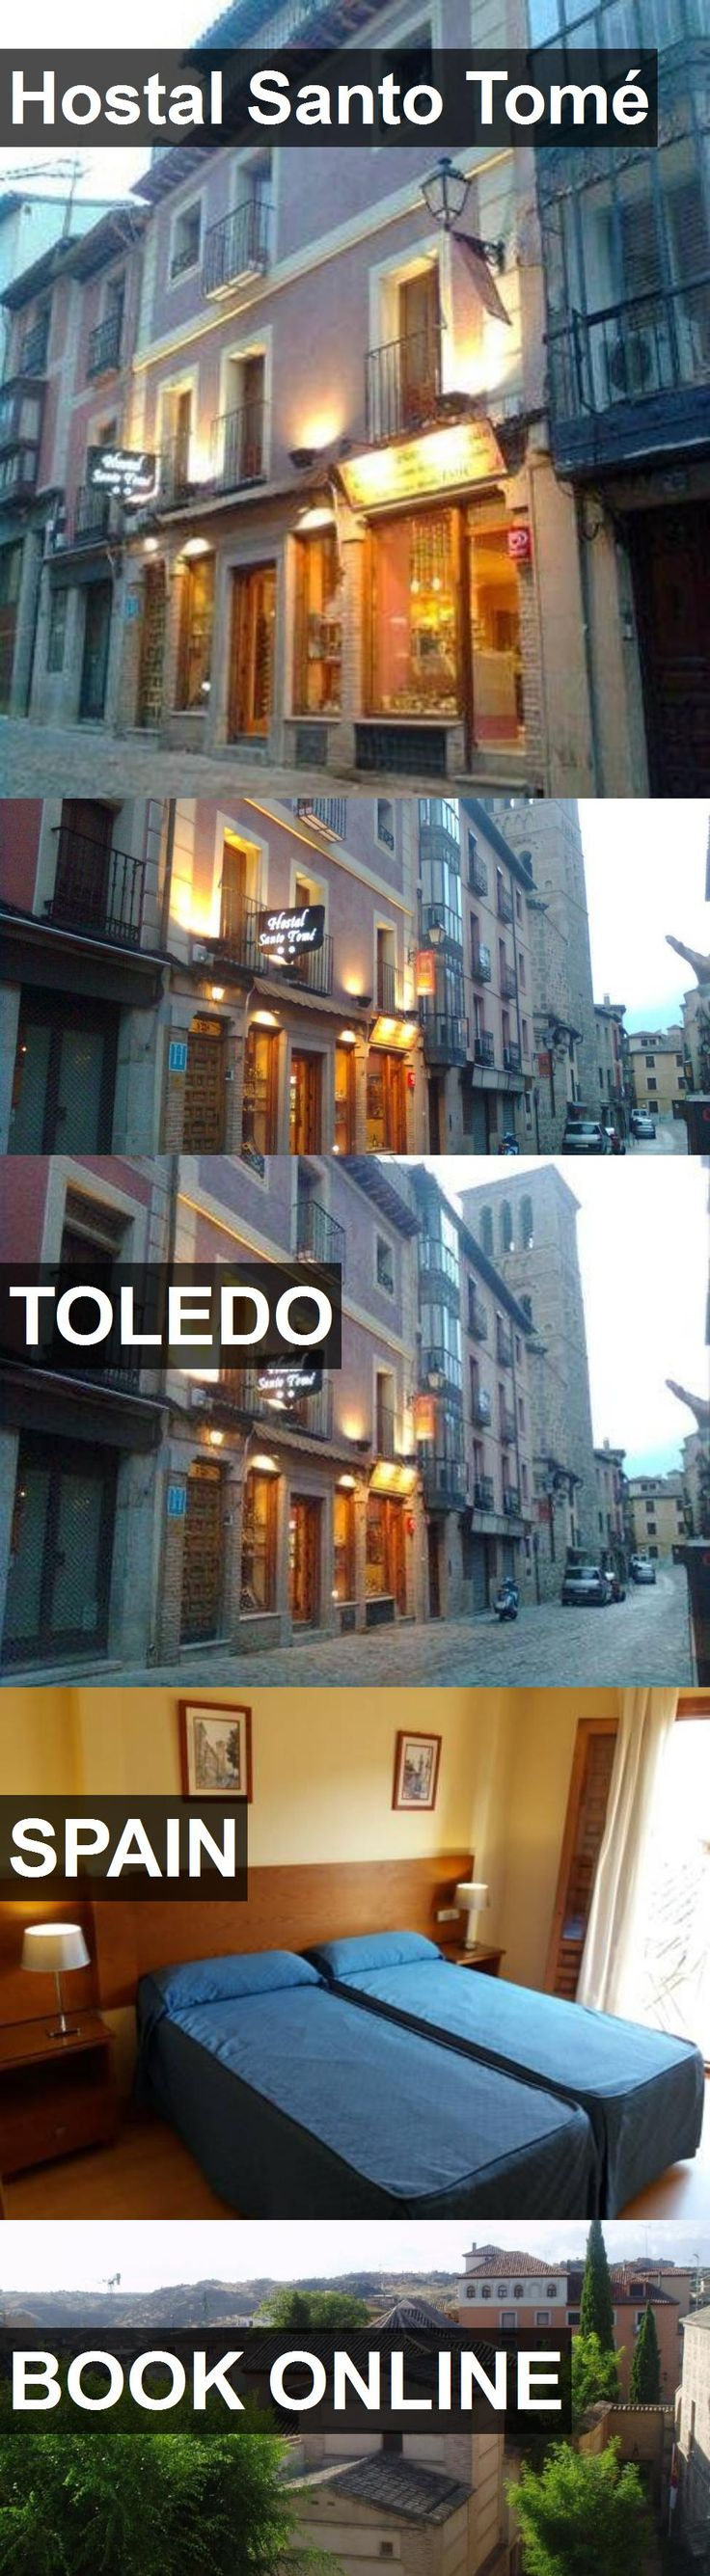 Hotel Hostal Santo Tomé in Toledo, Spain. For more information, photos, reviews and best prices please follow the link. #Spain #Toledo #travel #vacation #hotel